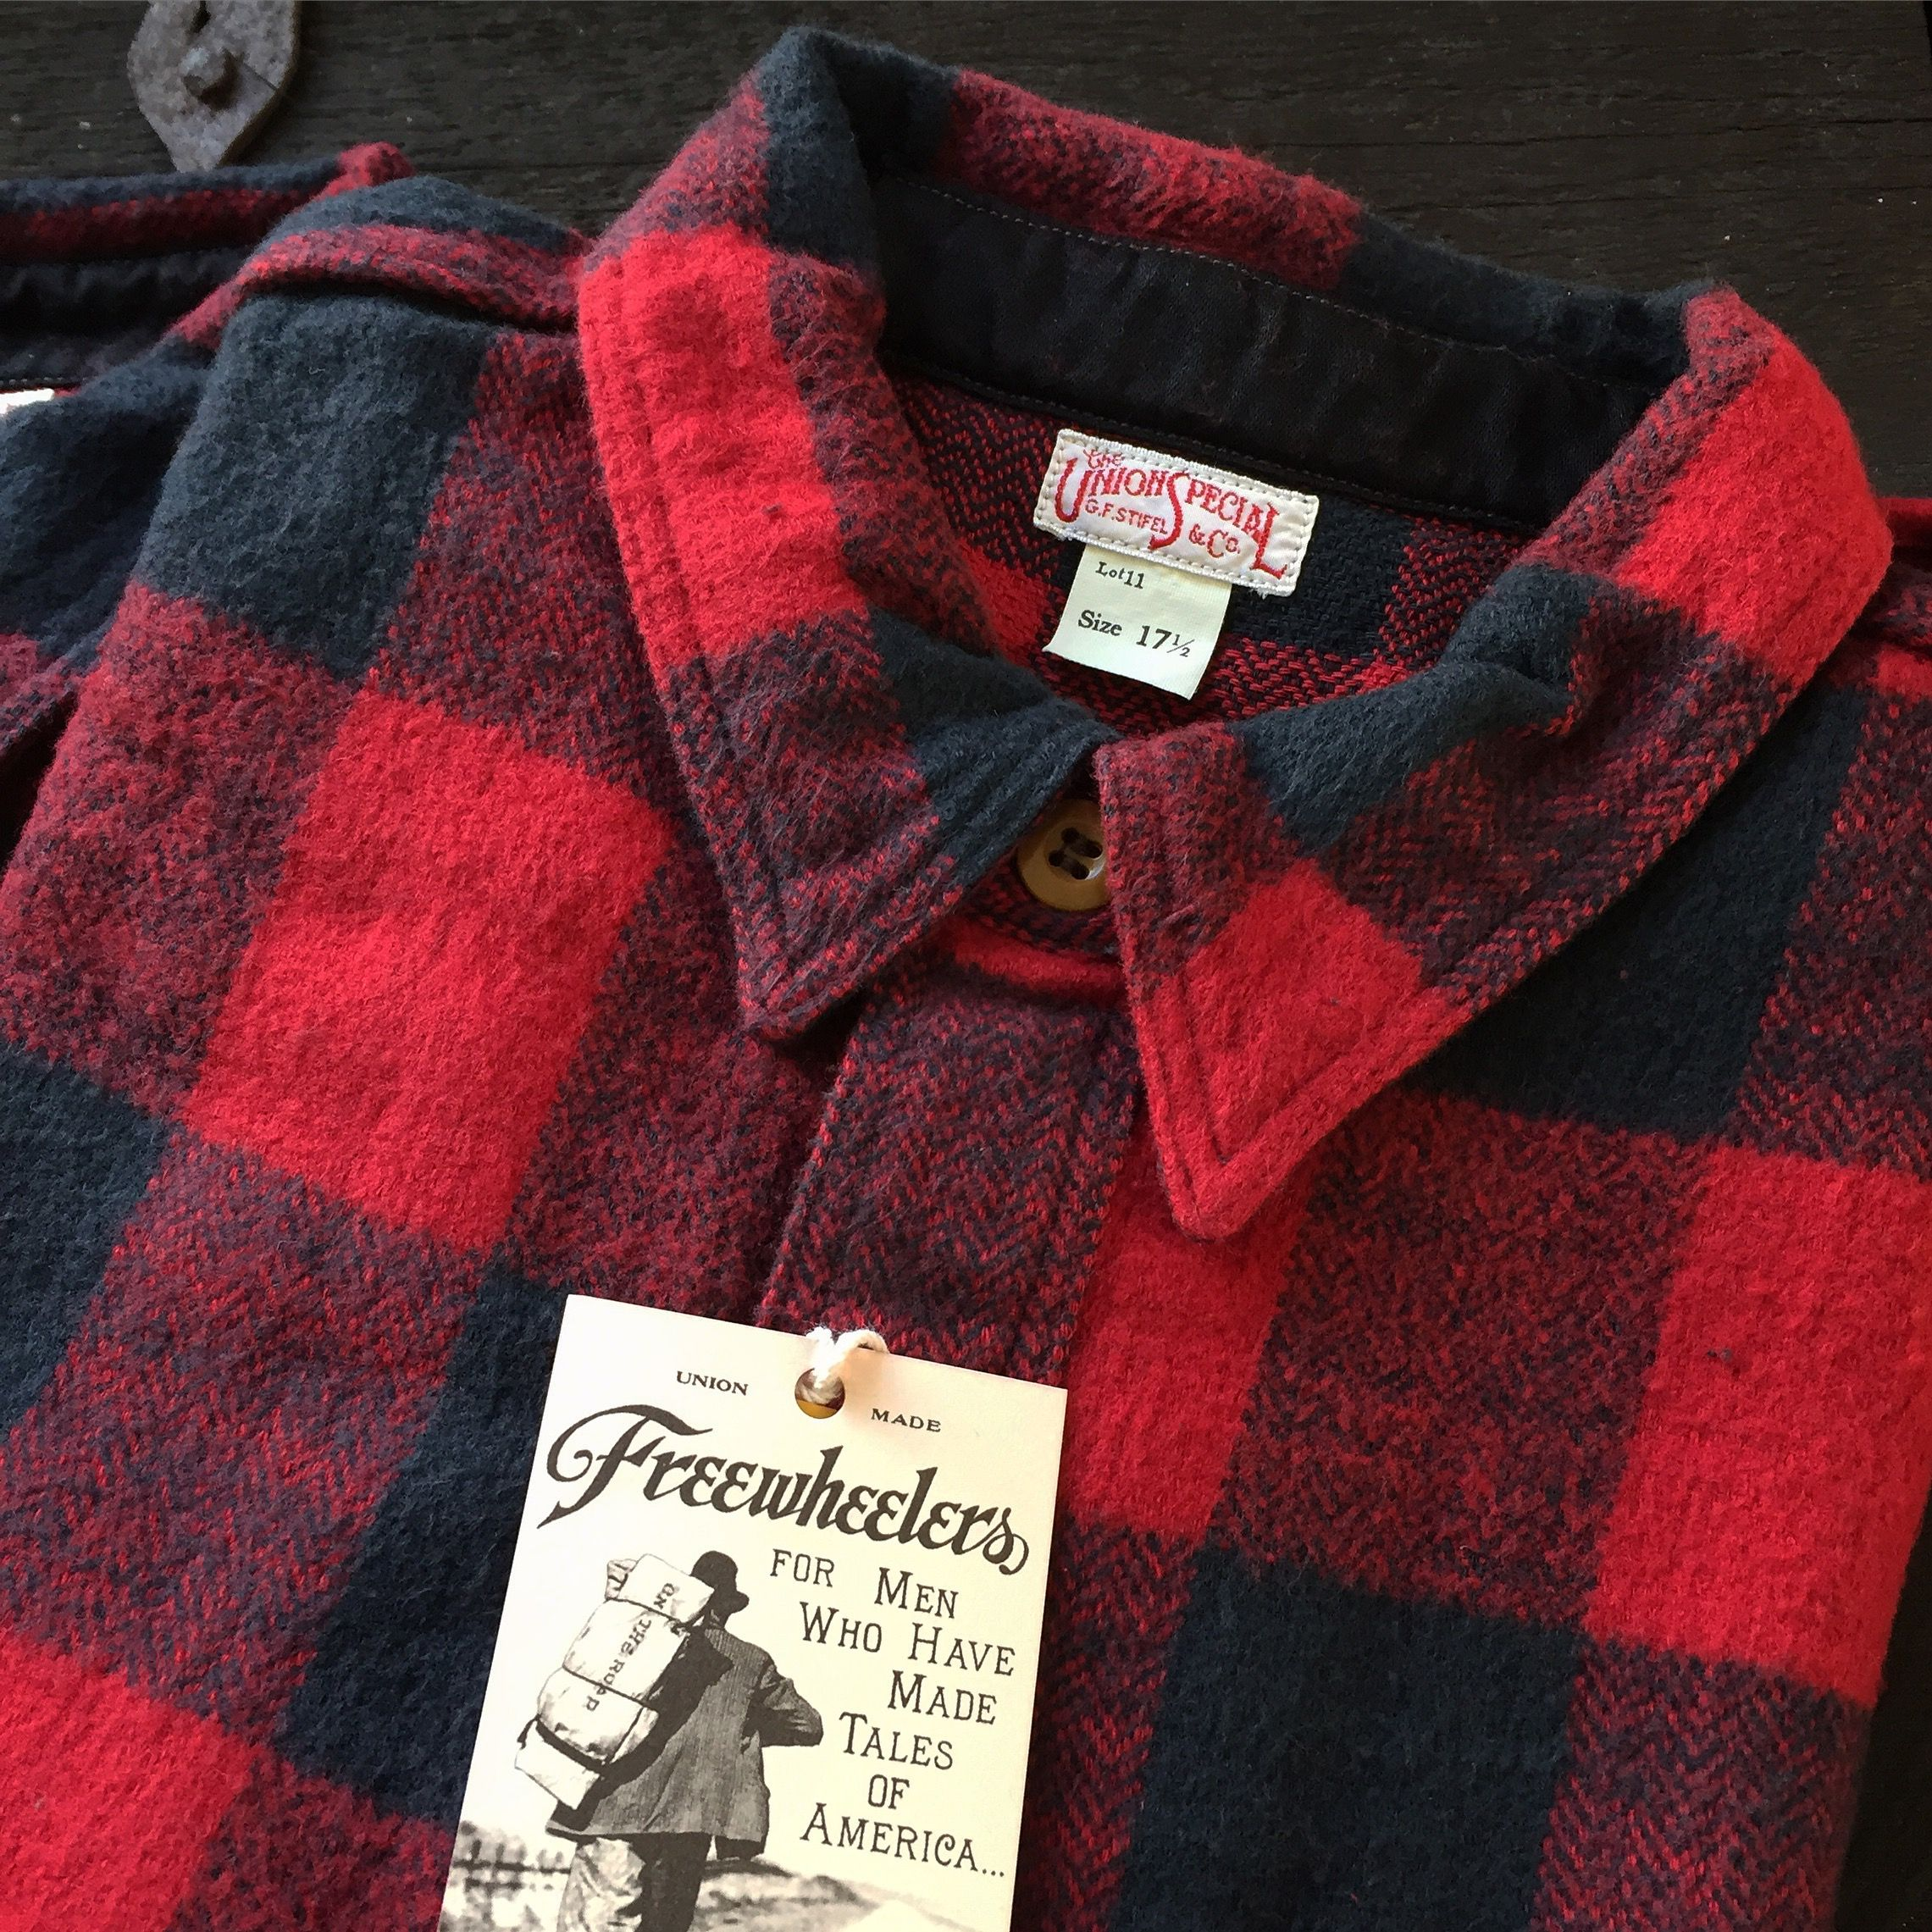 Freewheelers Stromberg Shirt. (made in japan, buffalo check, flannel, desolation row, union special)